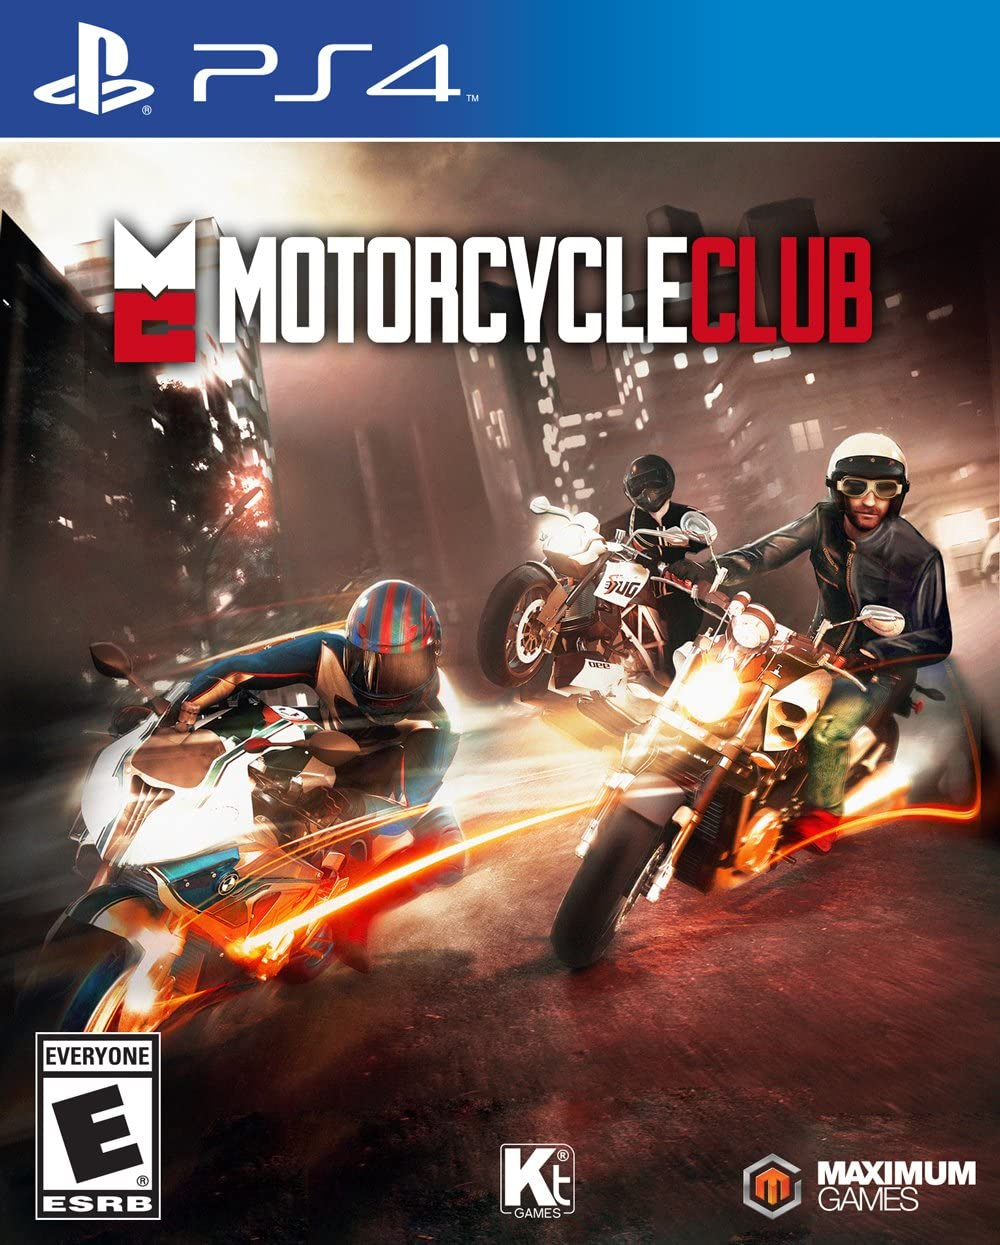 Amazon.com: Motorcycle Club - PlayStation 4: Maximum Games: Video Games